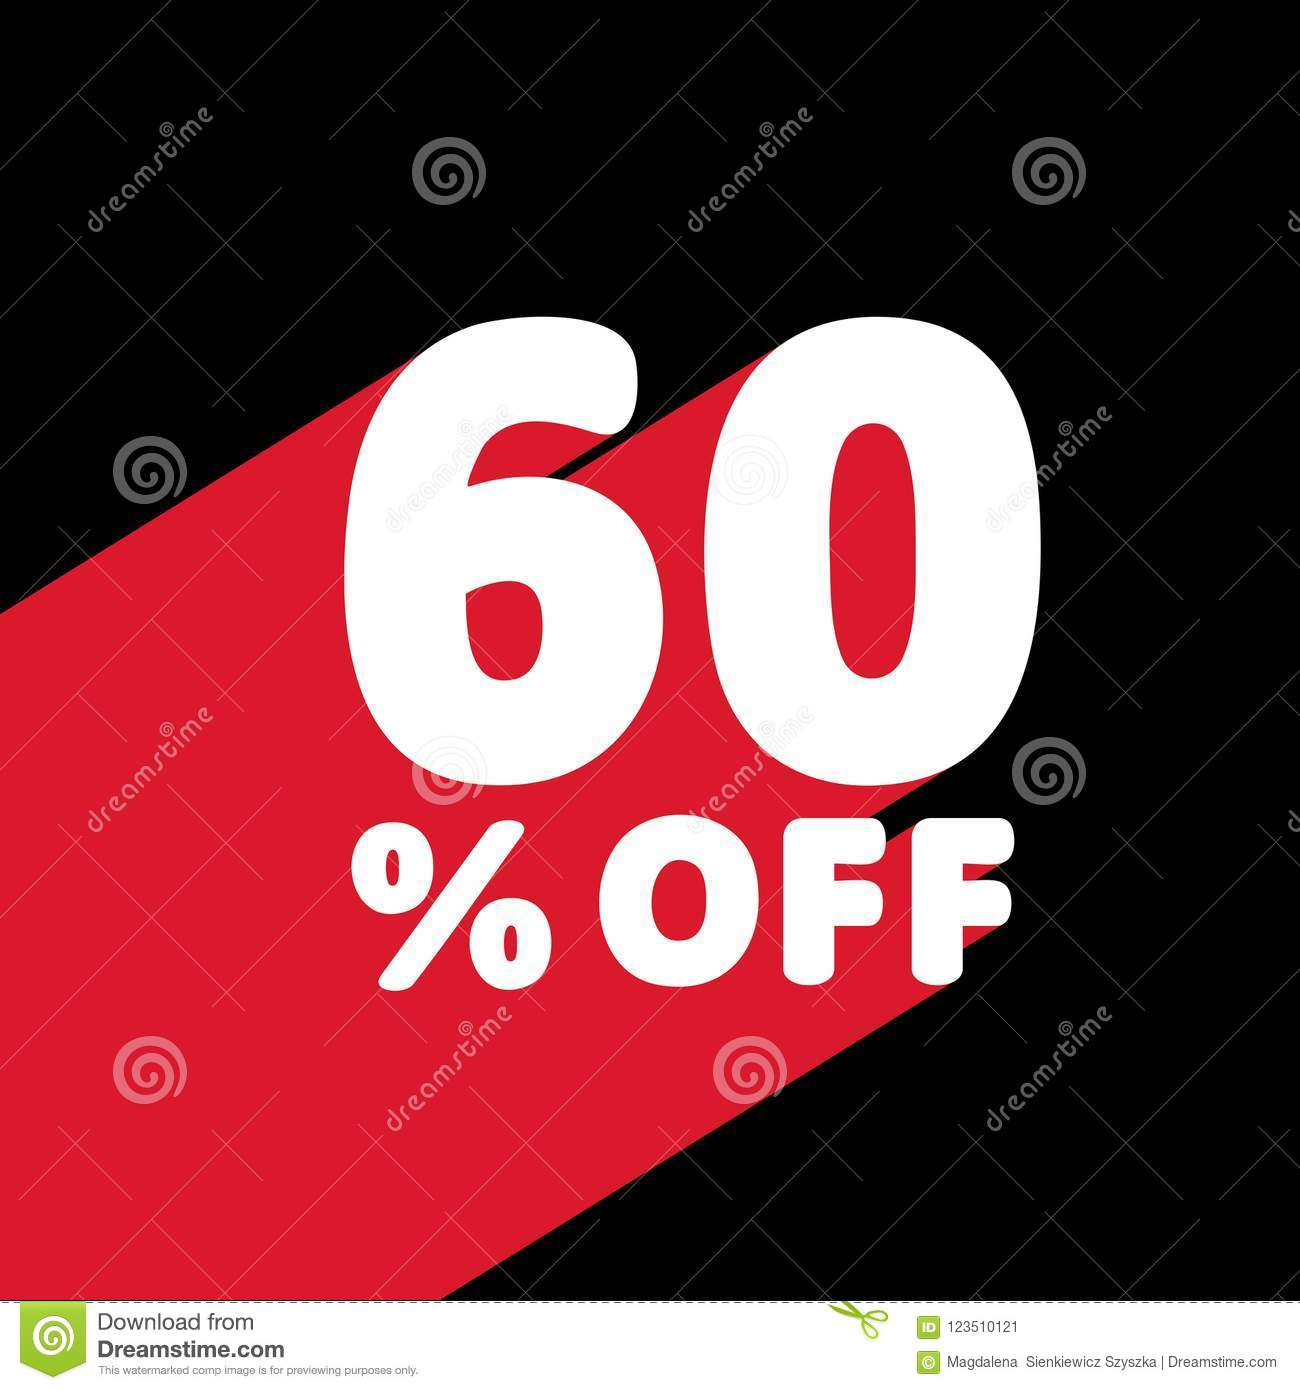 cca4ad054 60 OFF Discount. Discount Offer Price Illustration. White Text with Red  Shadow Below.